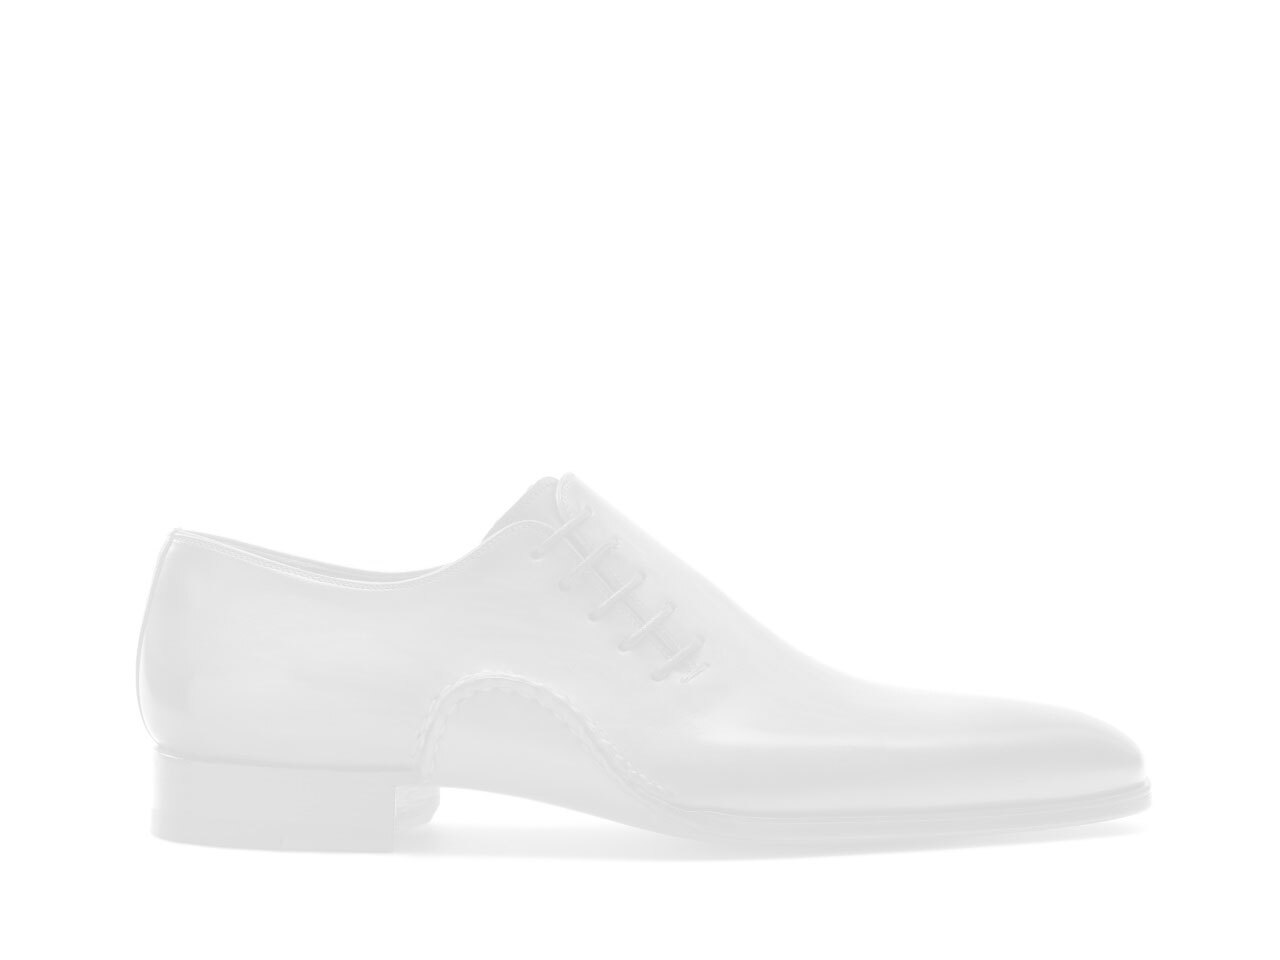 Designer sneakers by Magnanni